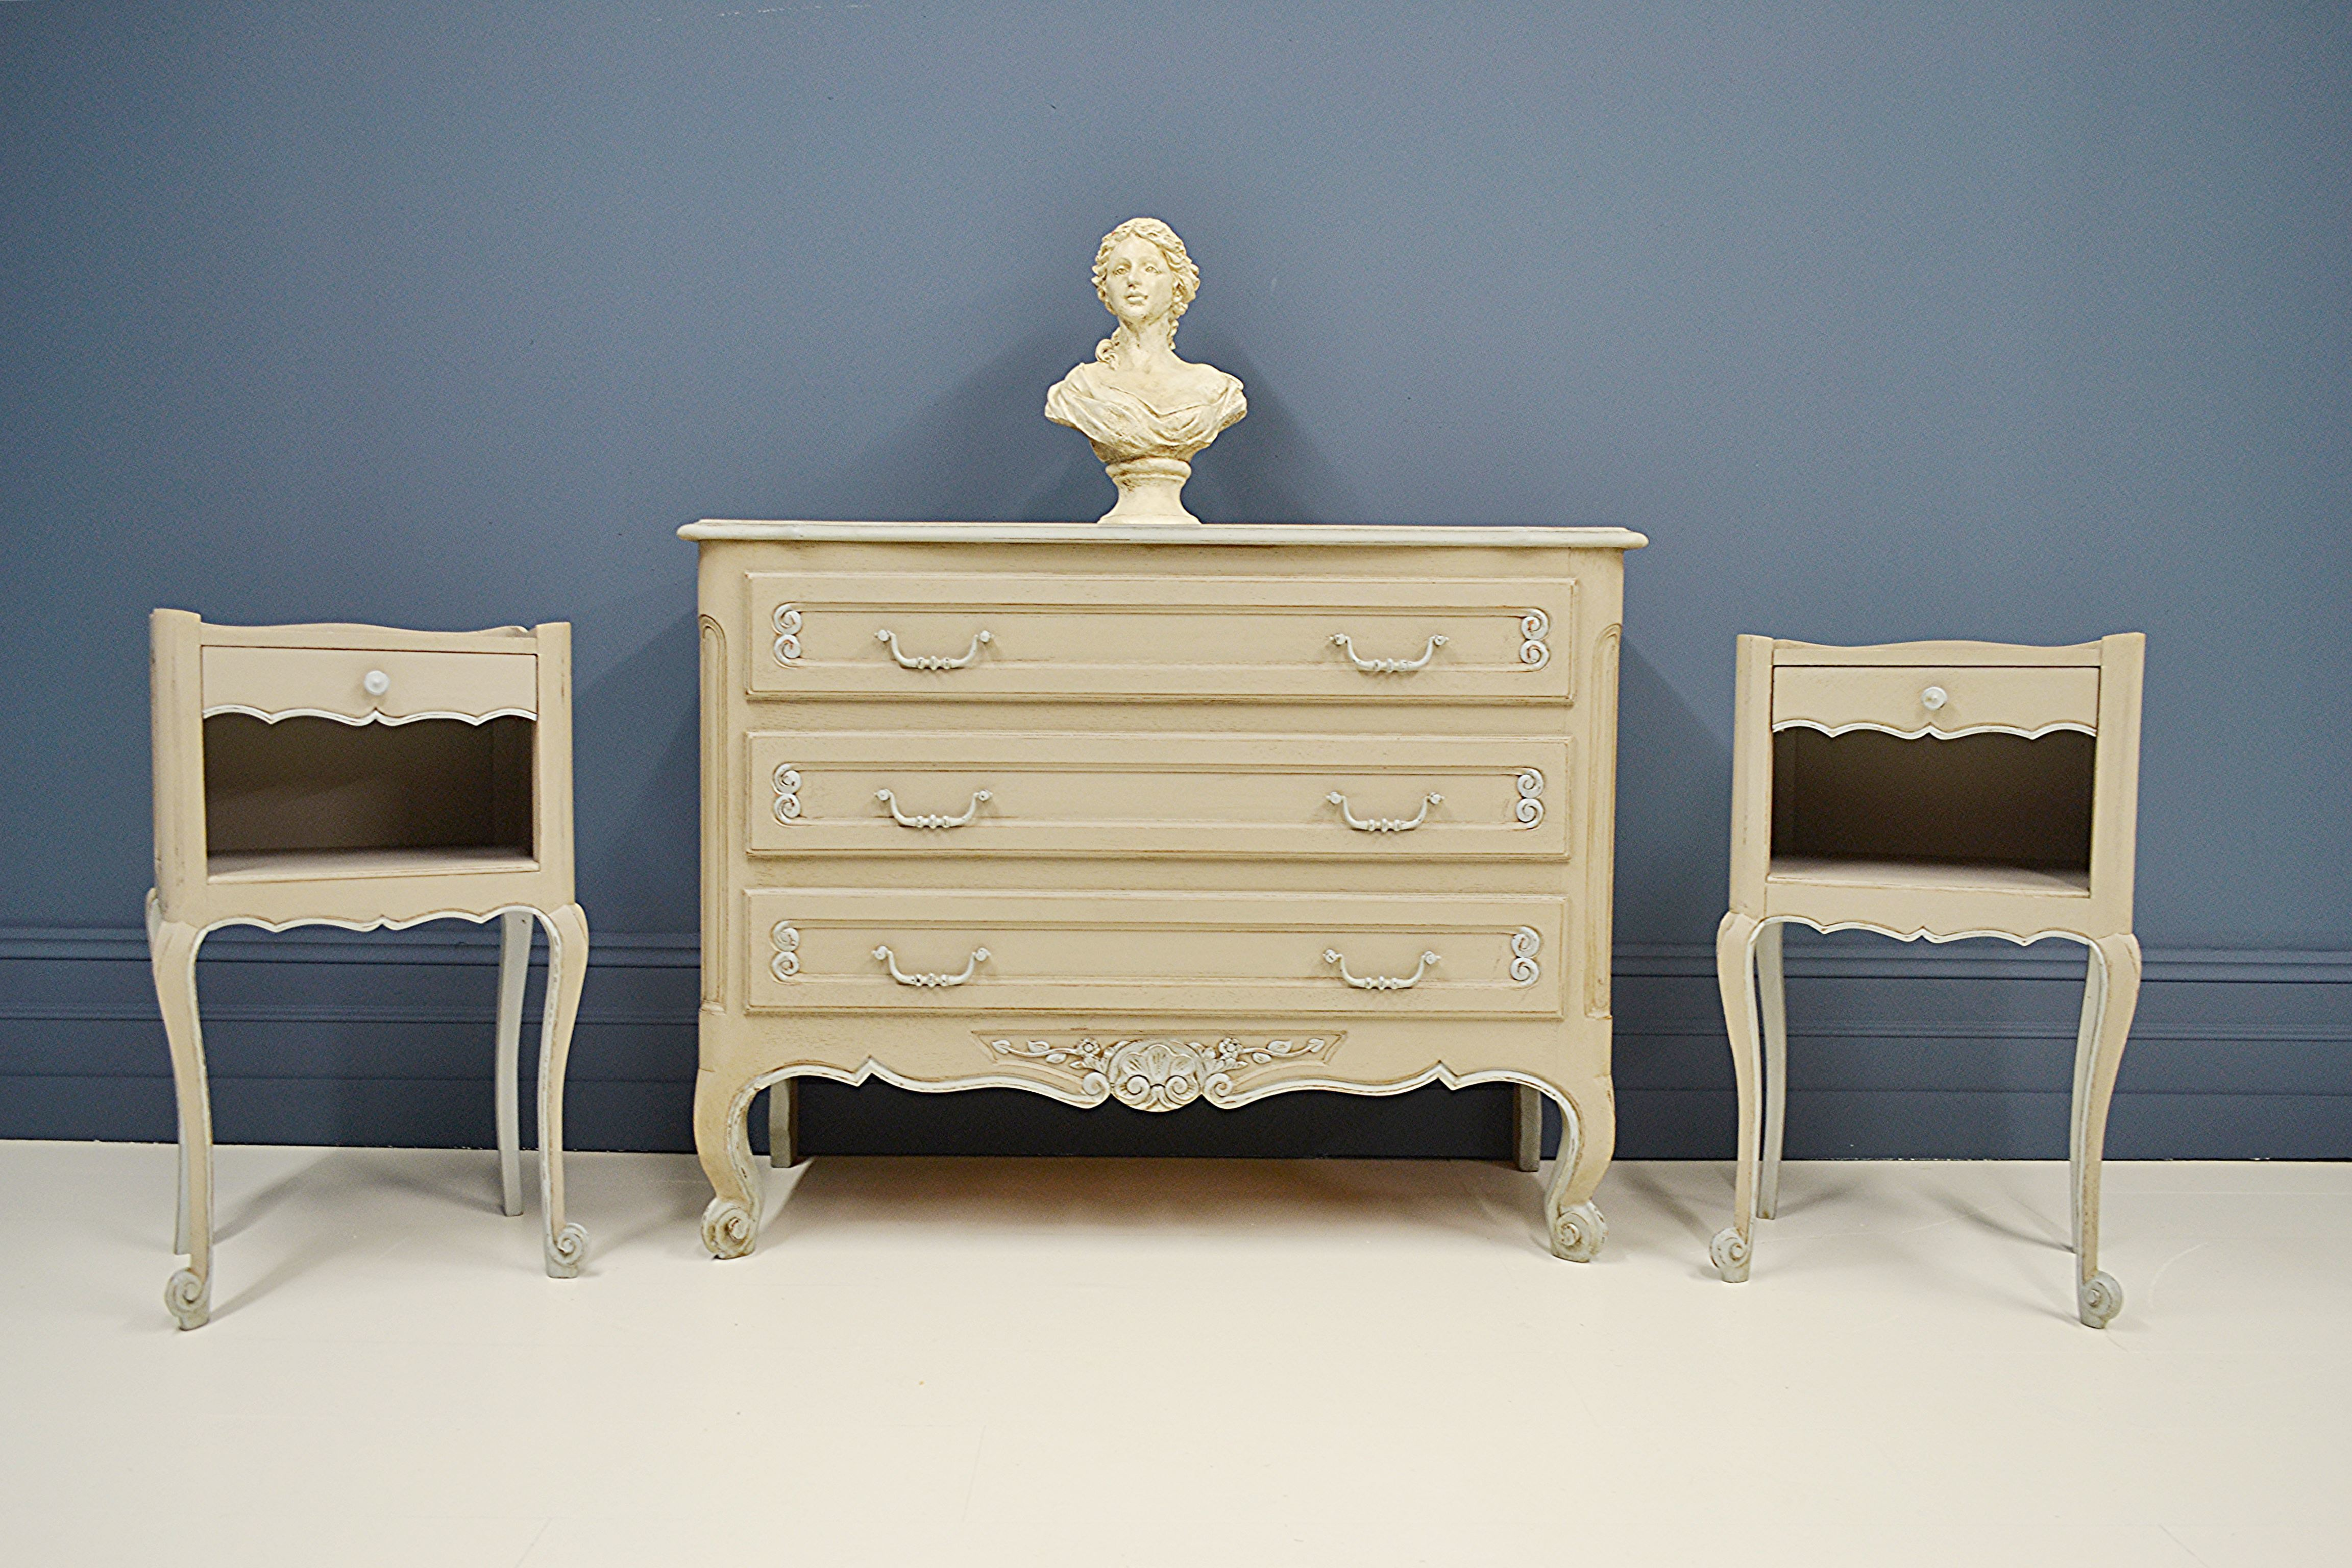 Vintage French Chest Of Drawers Bedside Table Bedroom Set Blue Grey Vinterior